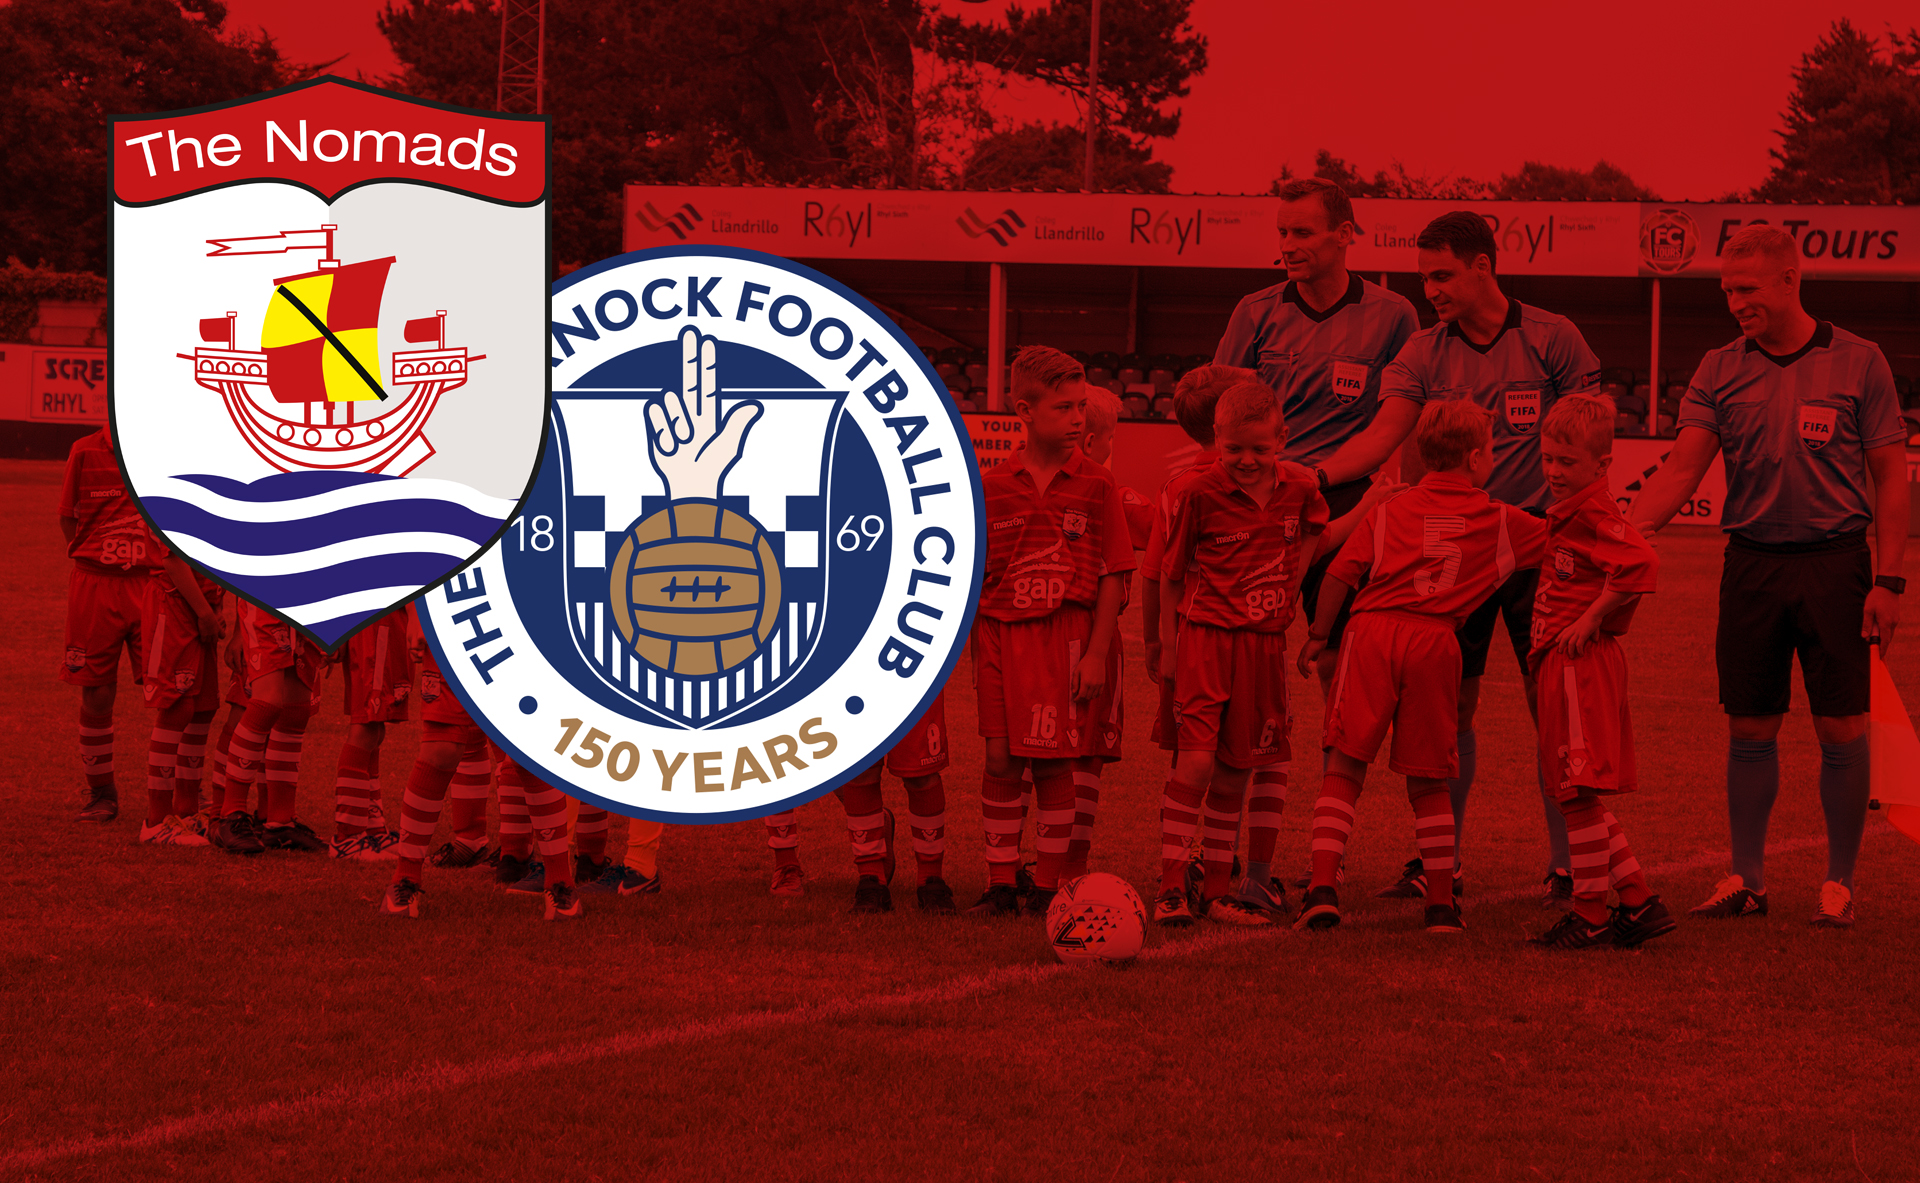 Connah's Quay Nomads vs Kilmarnock Match Information